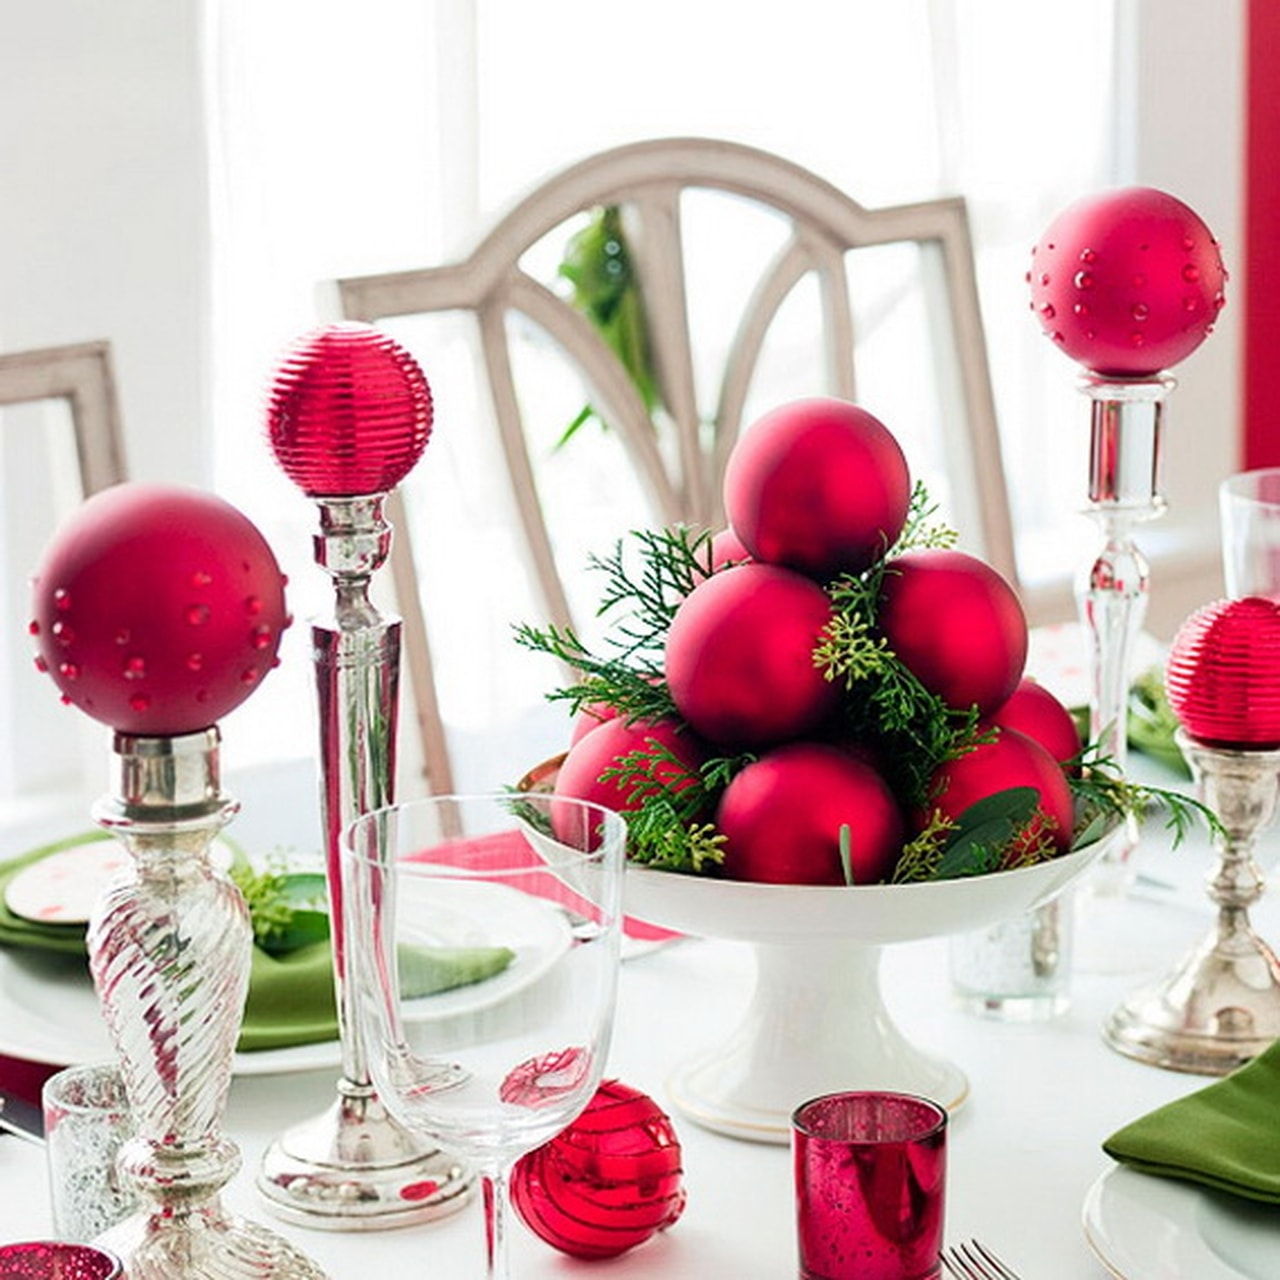 Decorating Ideas > 50 Best DIY Christmas Table Decoration Ideas For 2016 ~ 004028_Christmas Centerpiece Ideas Easy